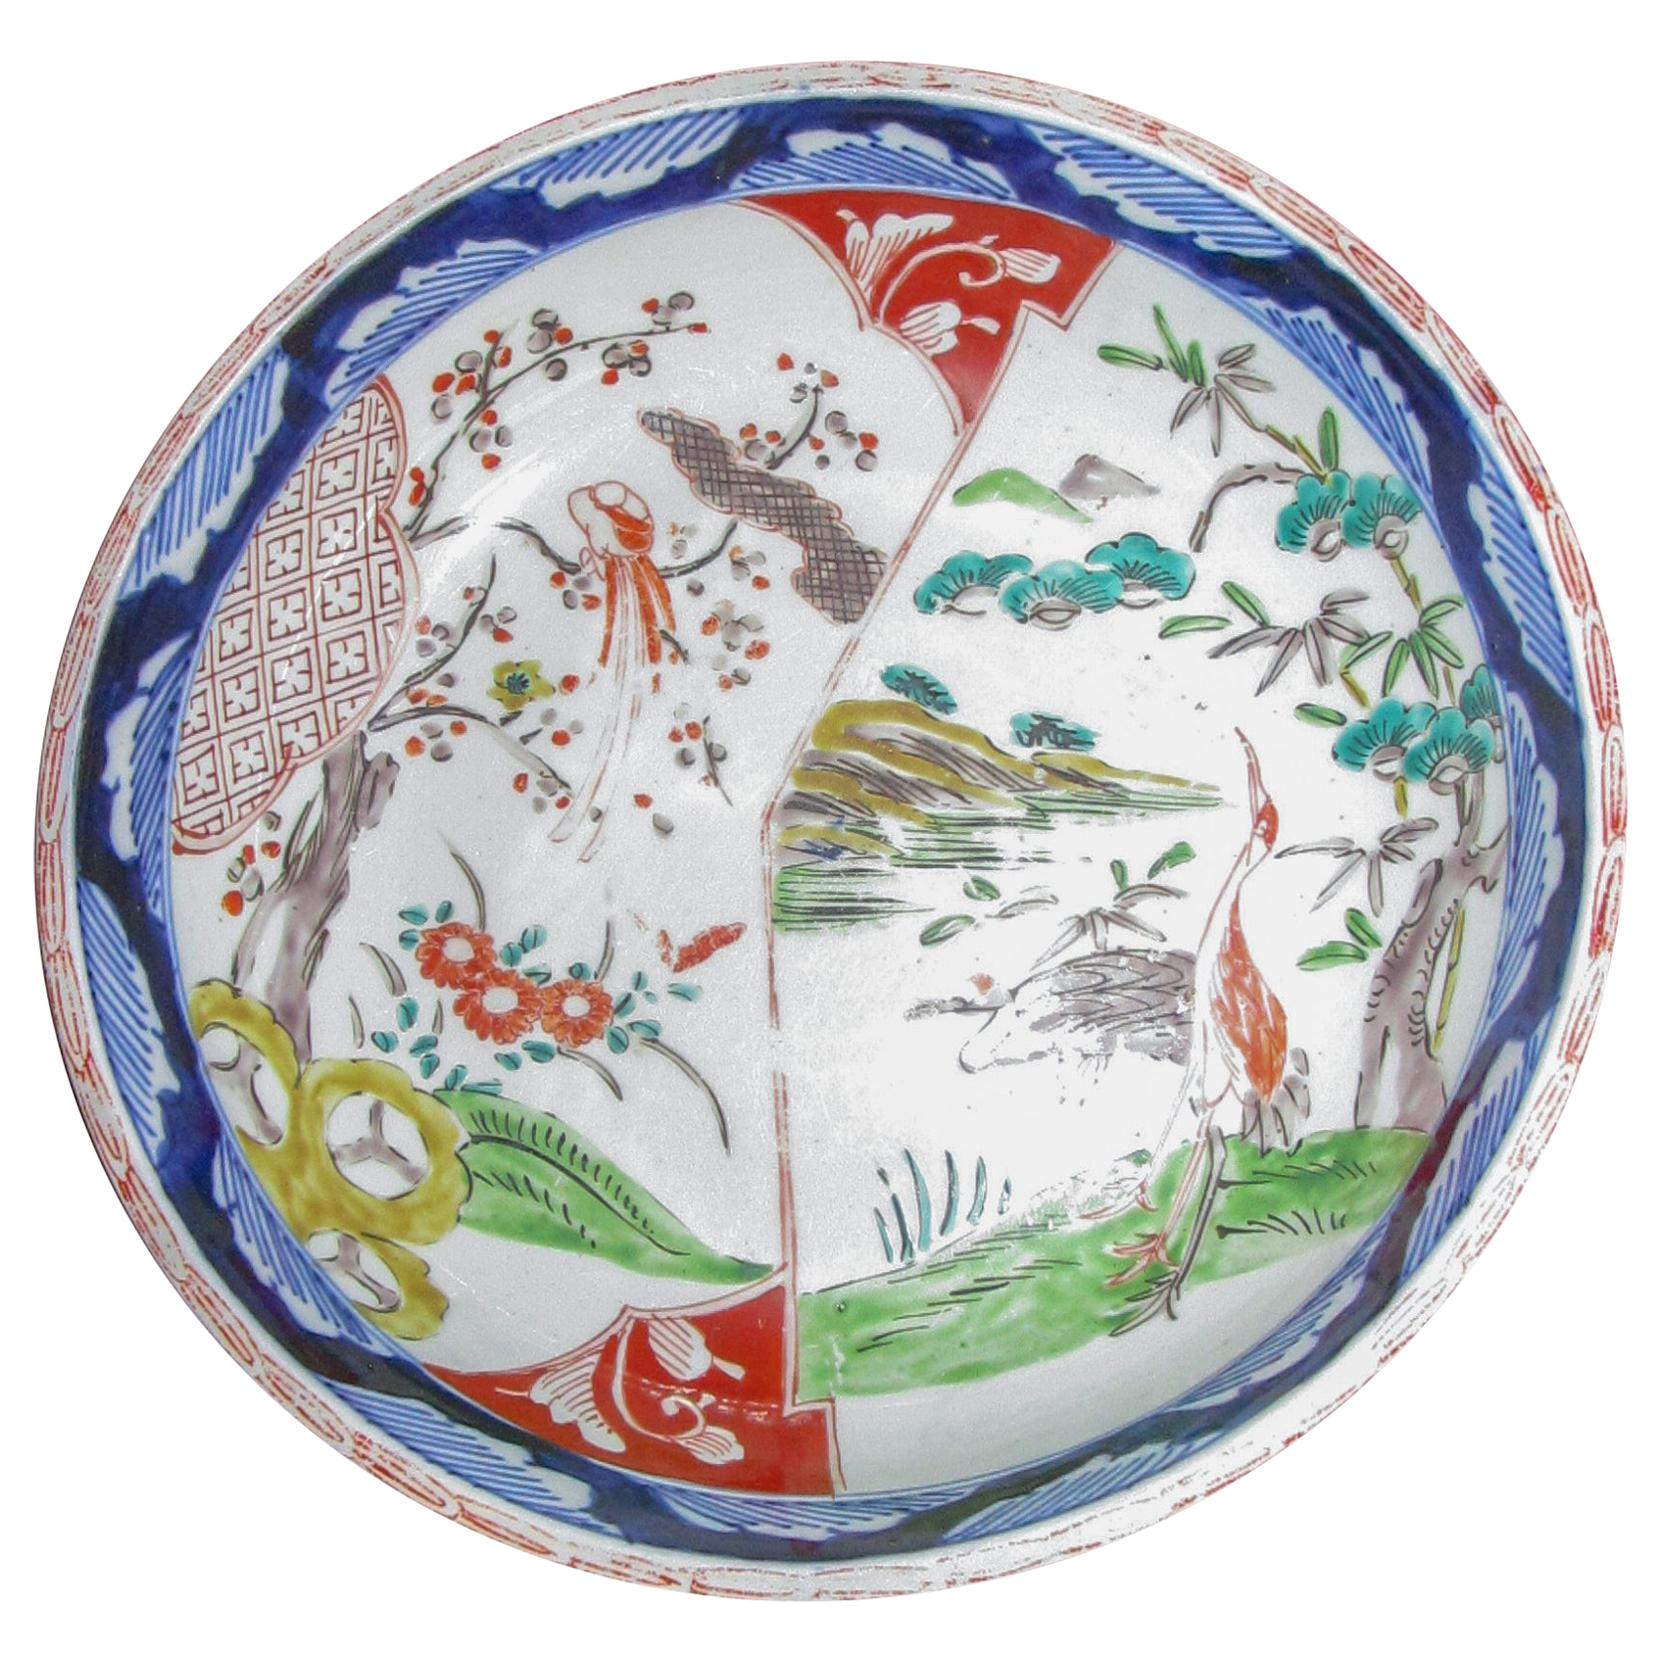 19th Century Imari Japanese Meiji Bowl with Crane Motif